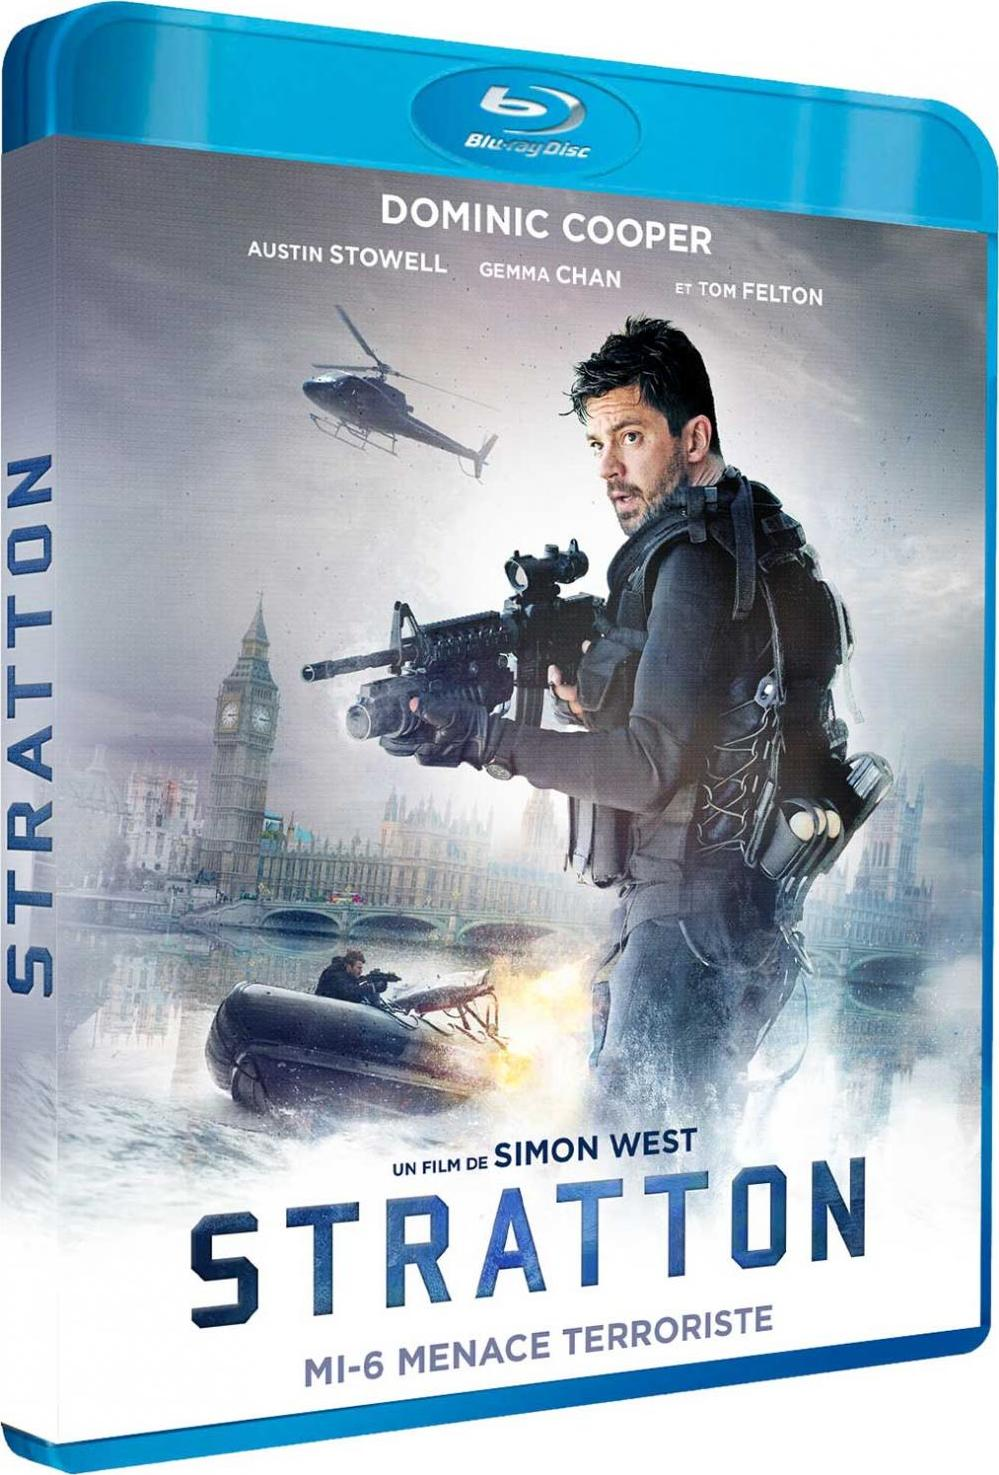 Stratton(2017) poster image